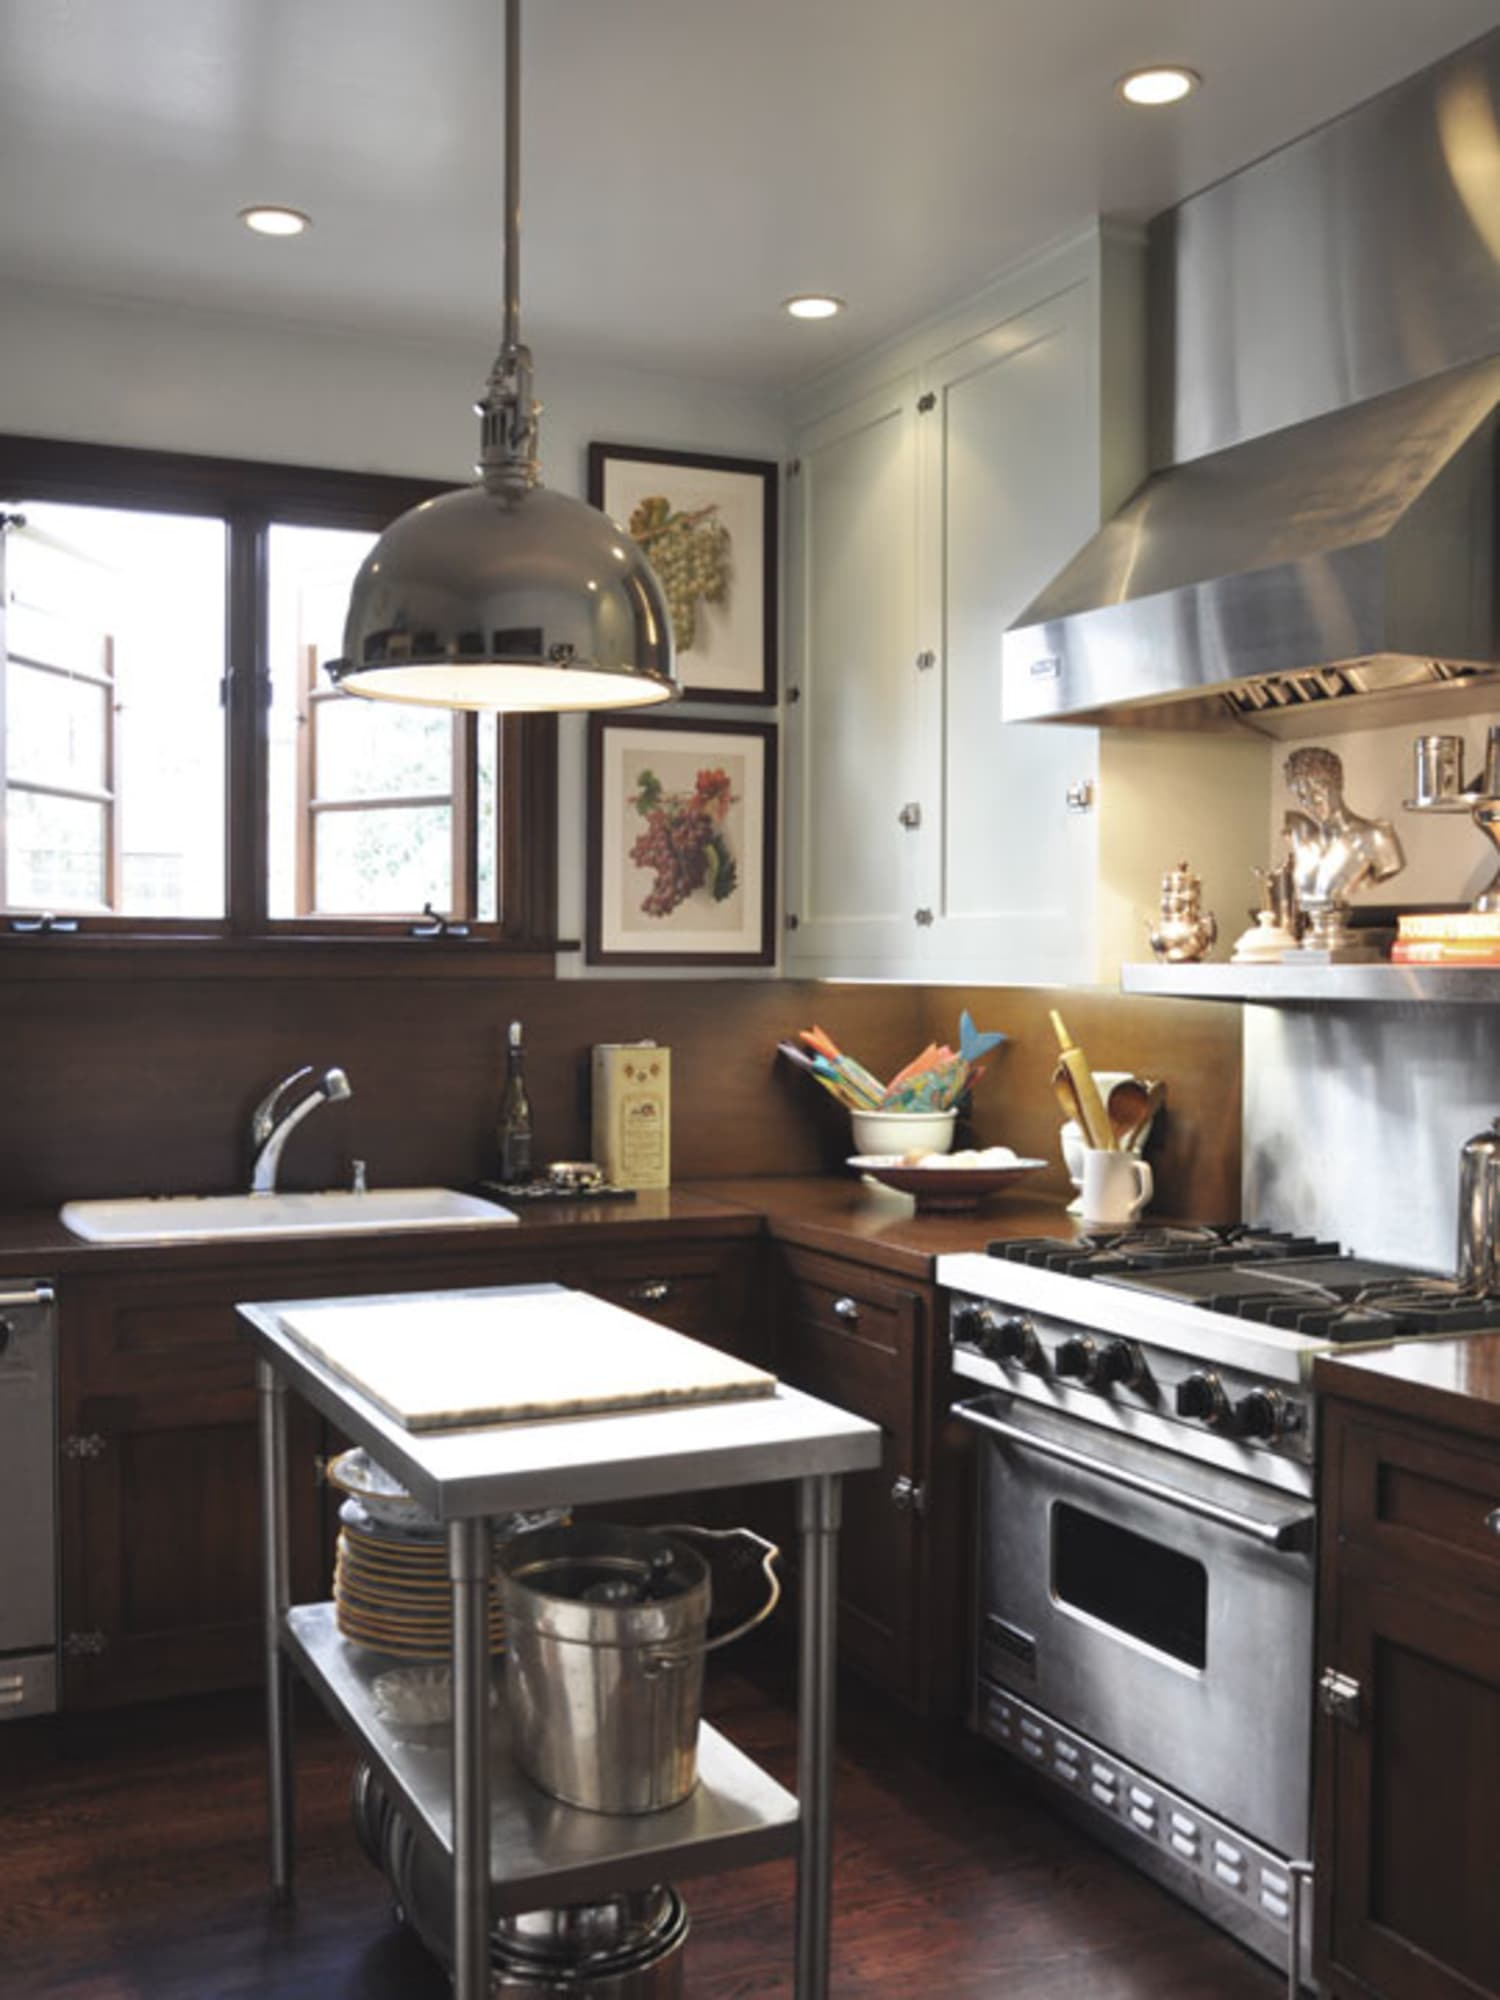 9 Steps To Arranging A Well Organized Kitchen Apartment